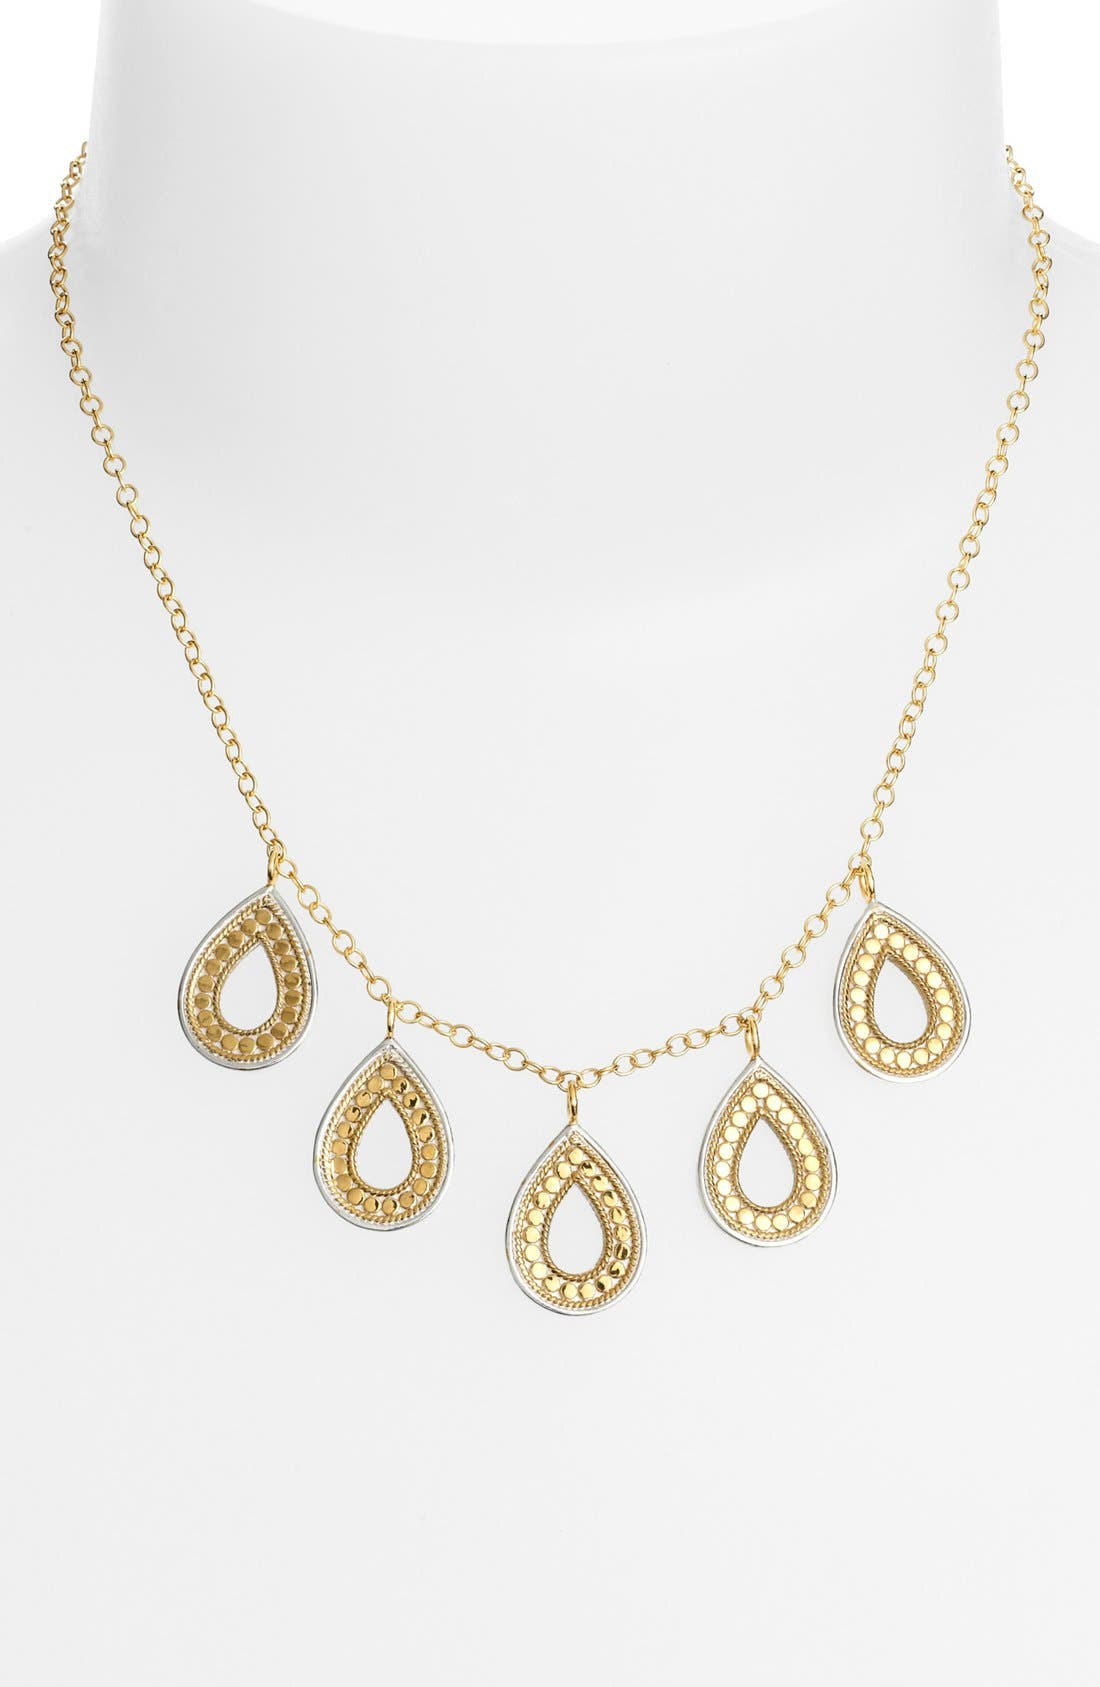 Main Image - Anna Beck 'Gili' Open 5-Drop Frontal Necklace